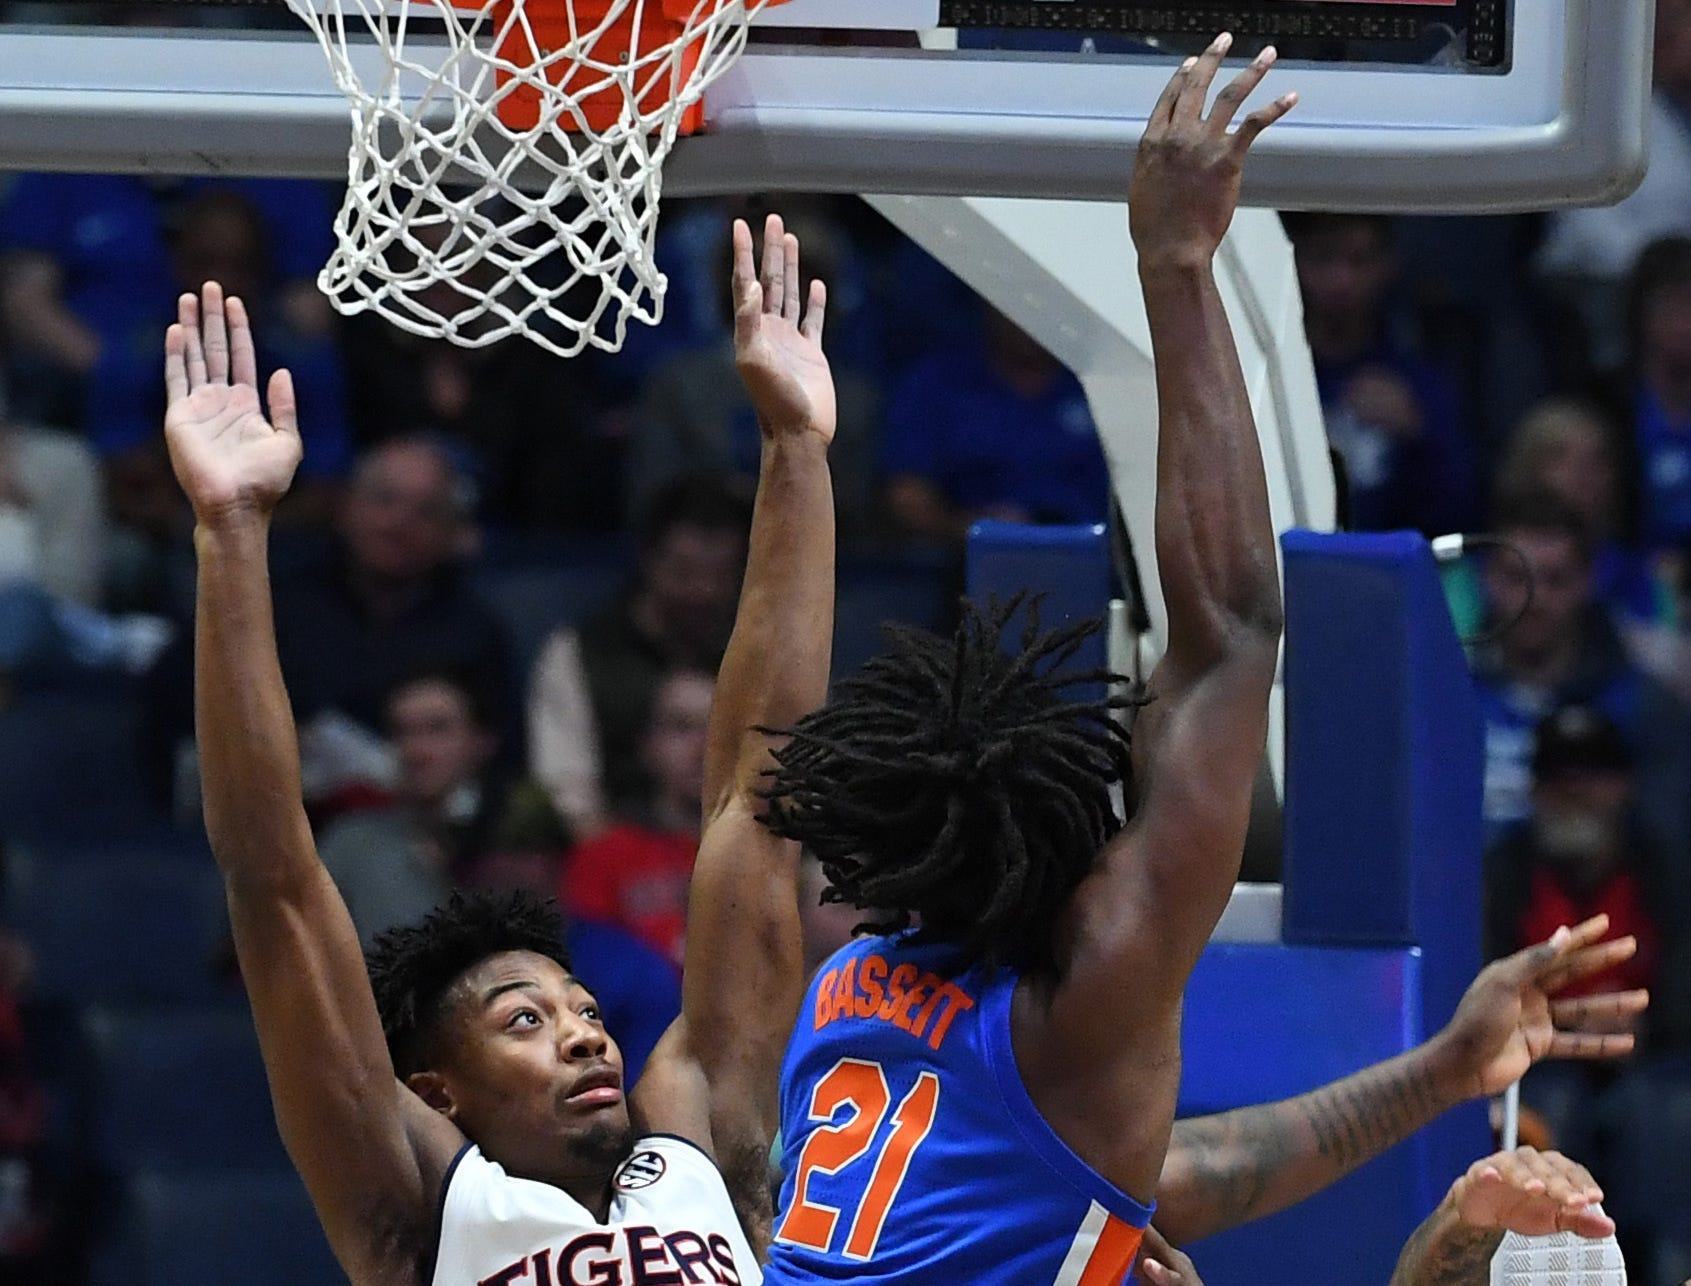 Mar 16, 2019; Nashville, TN, USA; Florida Gators forward Dontay Bassett (21) shoots the ball past Auburn Tigers forward Anfernee McLemore (24) during the first half of the SEC conference tournament at Bridgestone Arena. Mandatory Credit: Christopher Hanewinckel-USA TODAY Sports